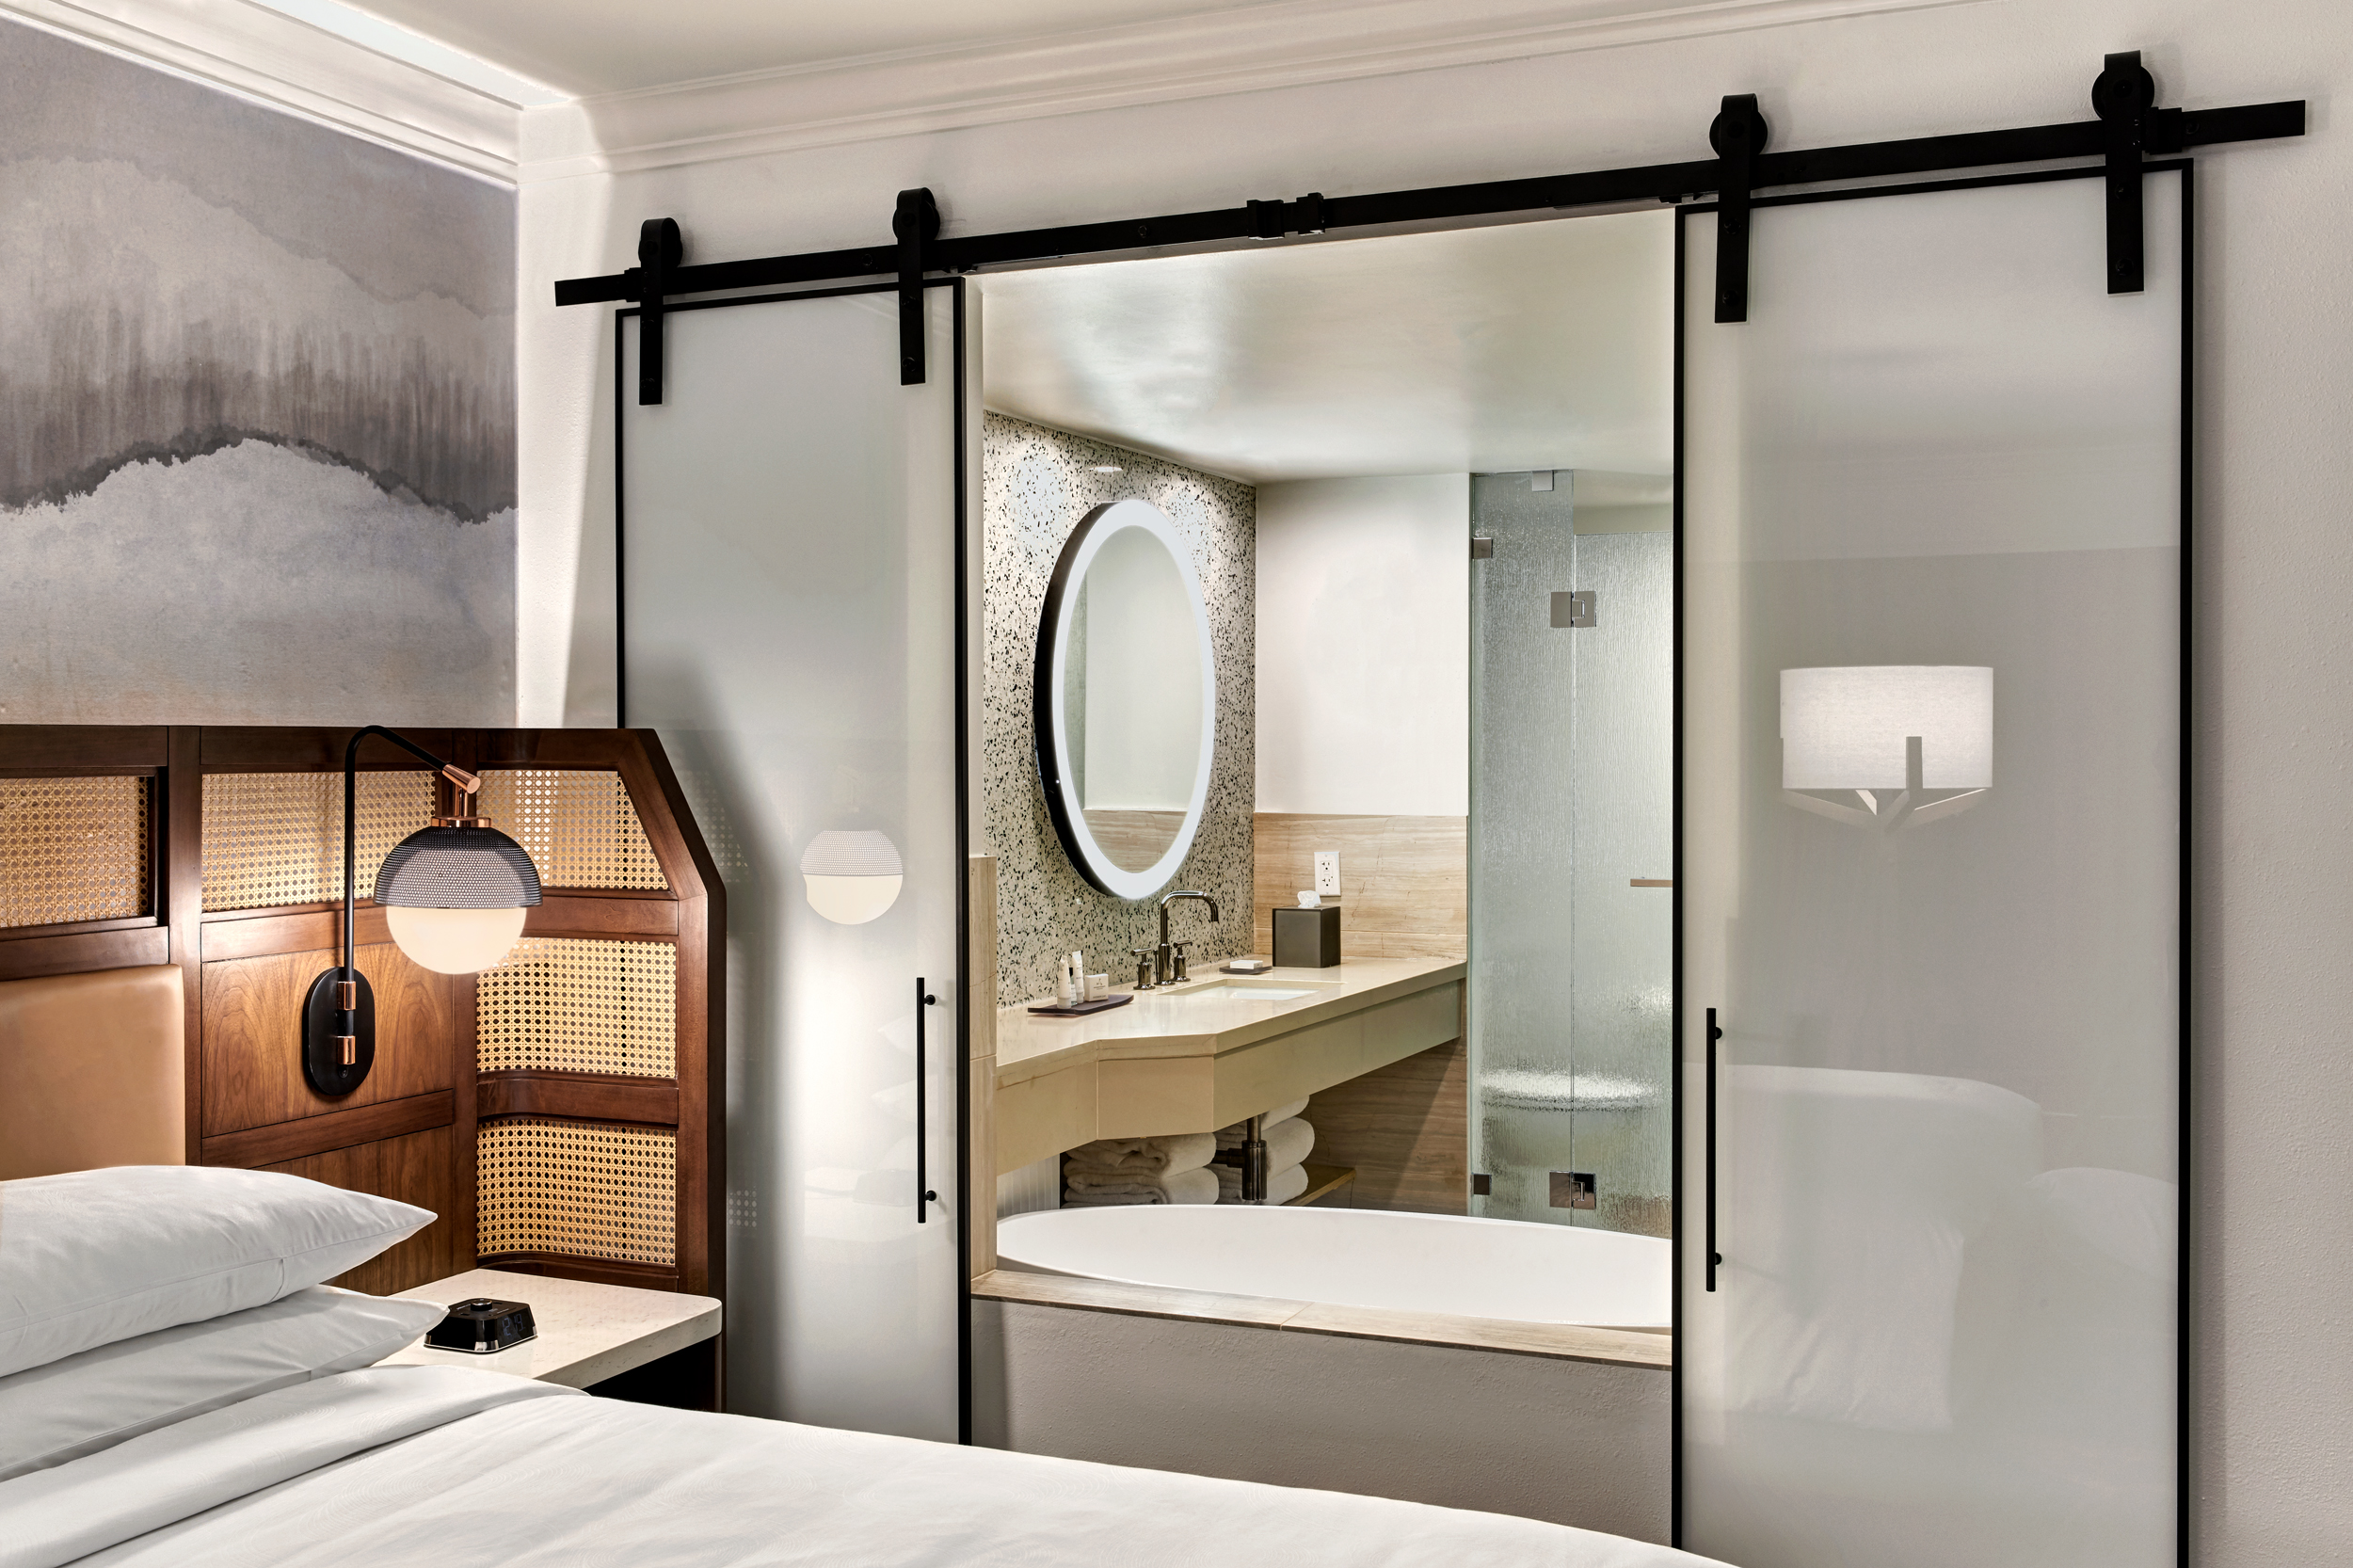 More than 300 of the rooms have freestandingcontemporary soaking tubs.